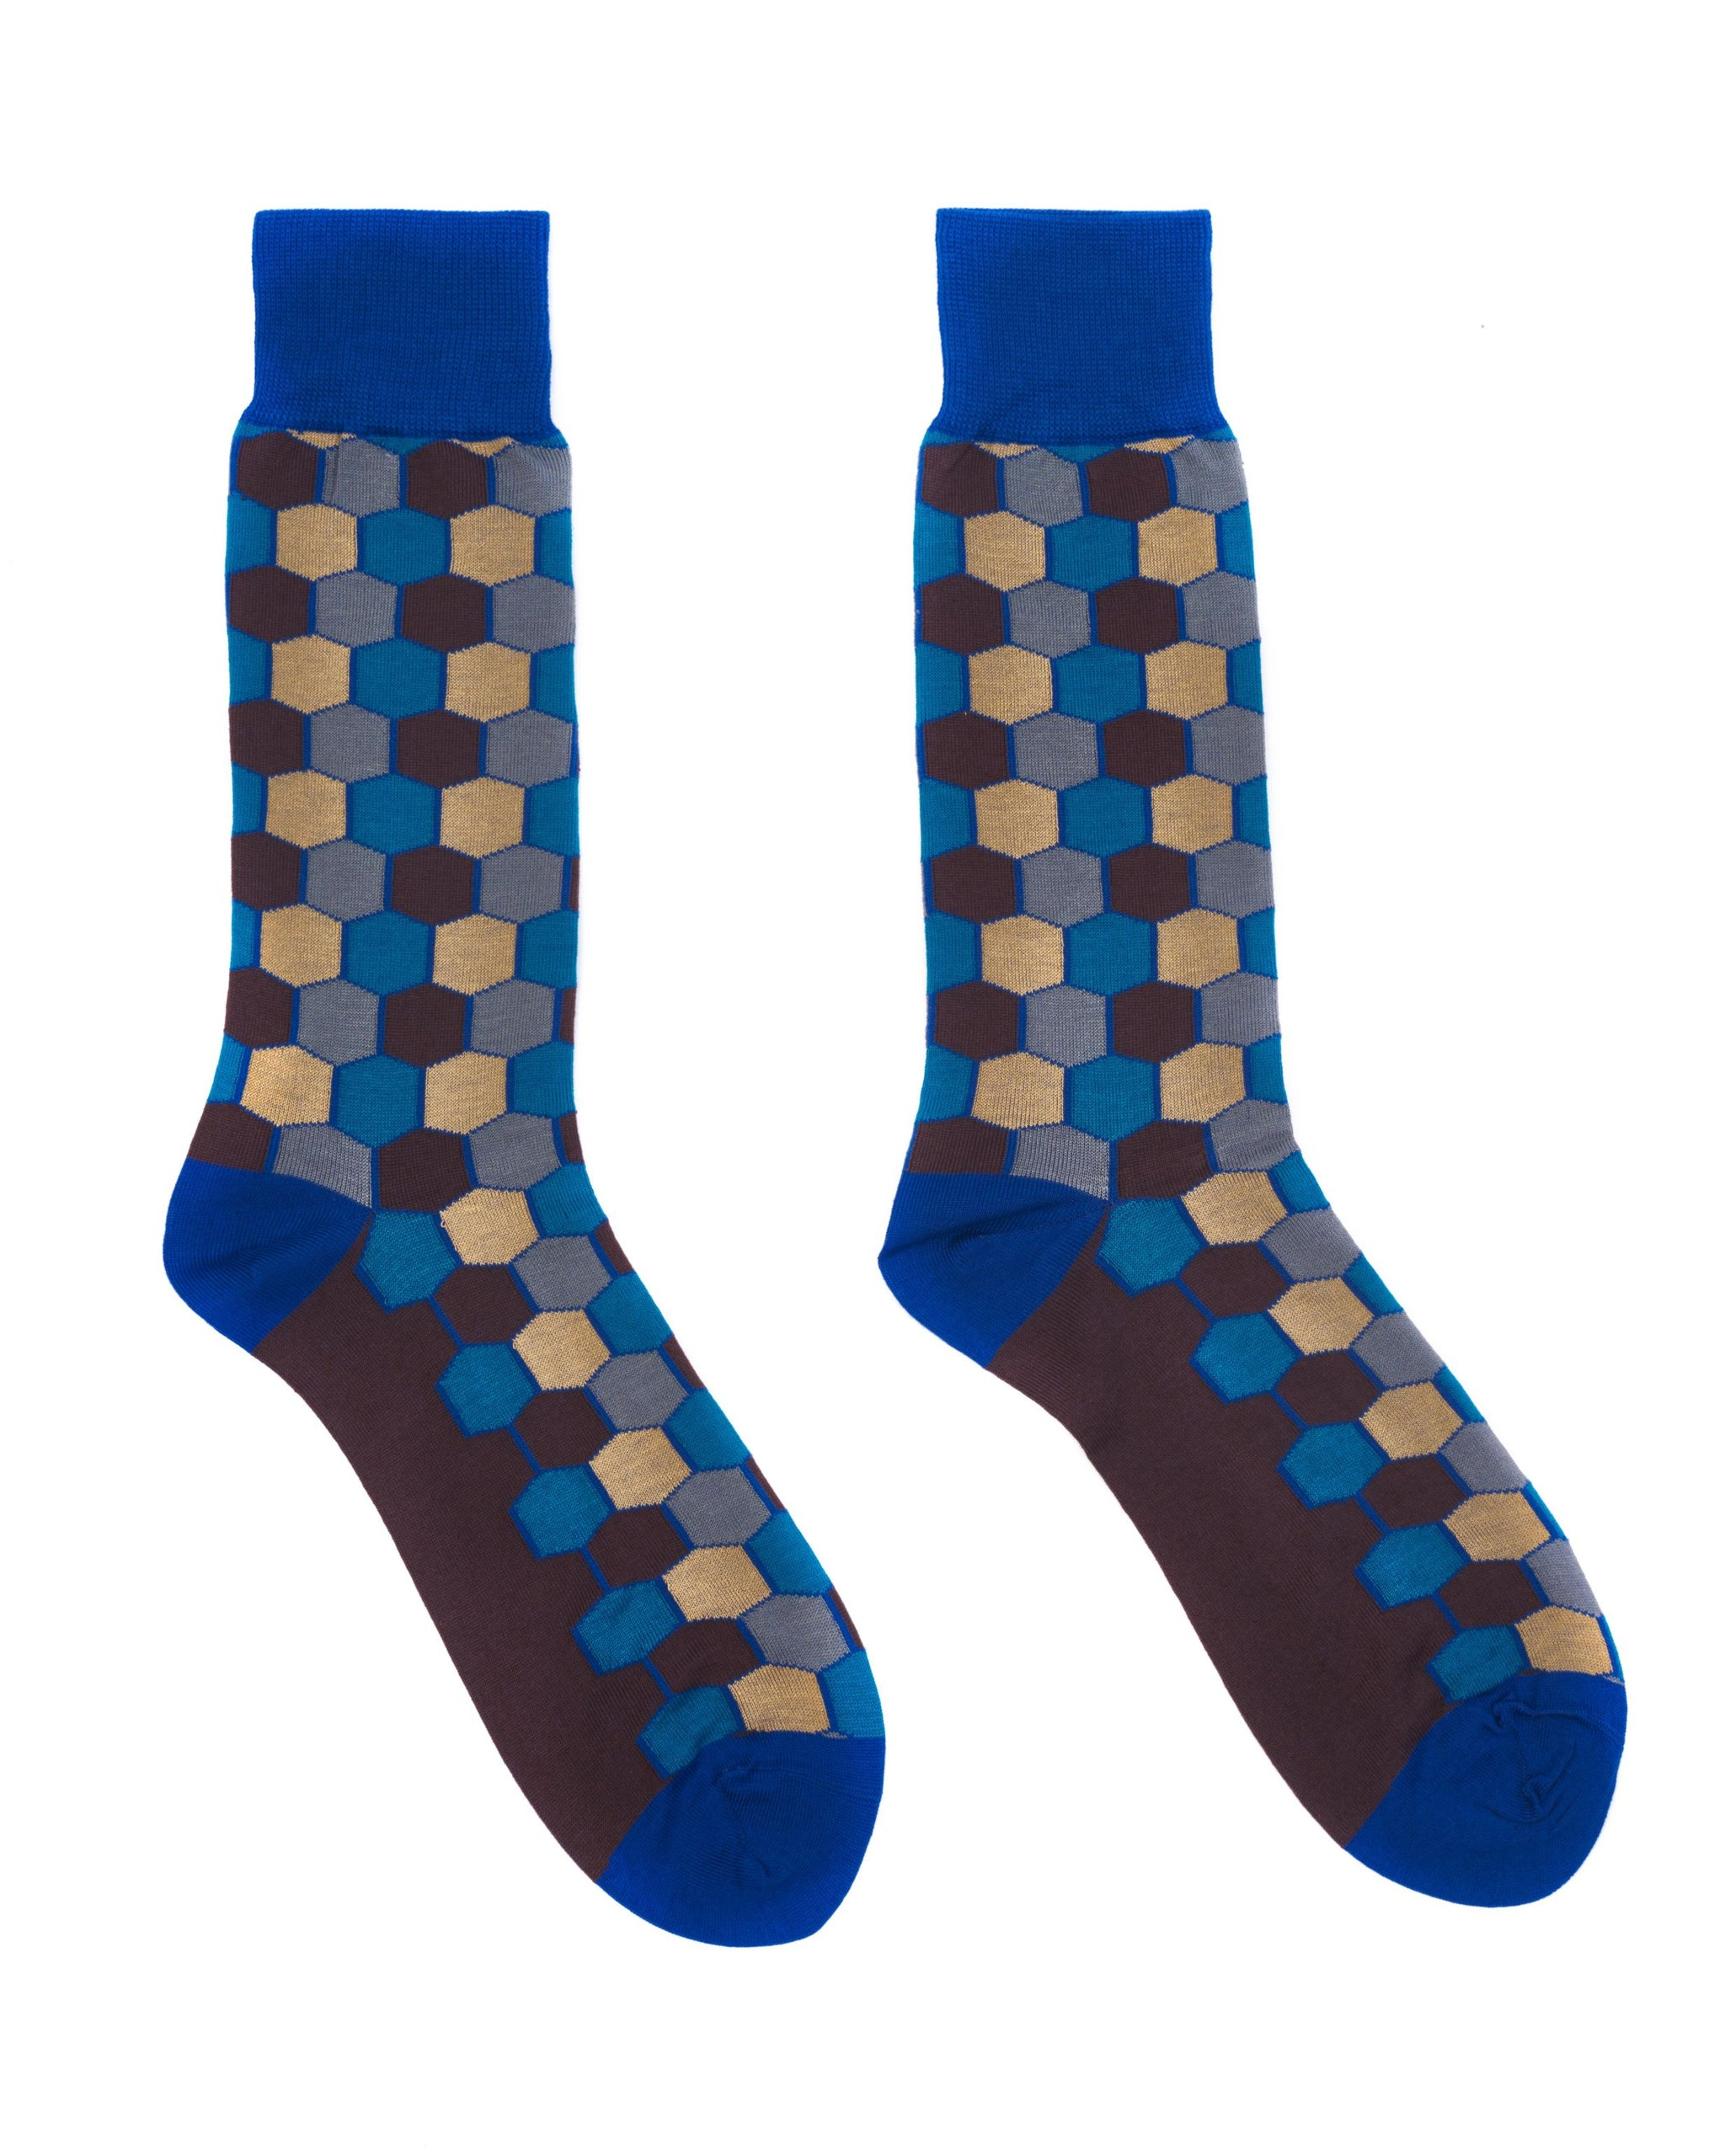 Blue, Brown & Tan Hexagon Socks